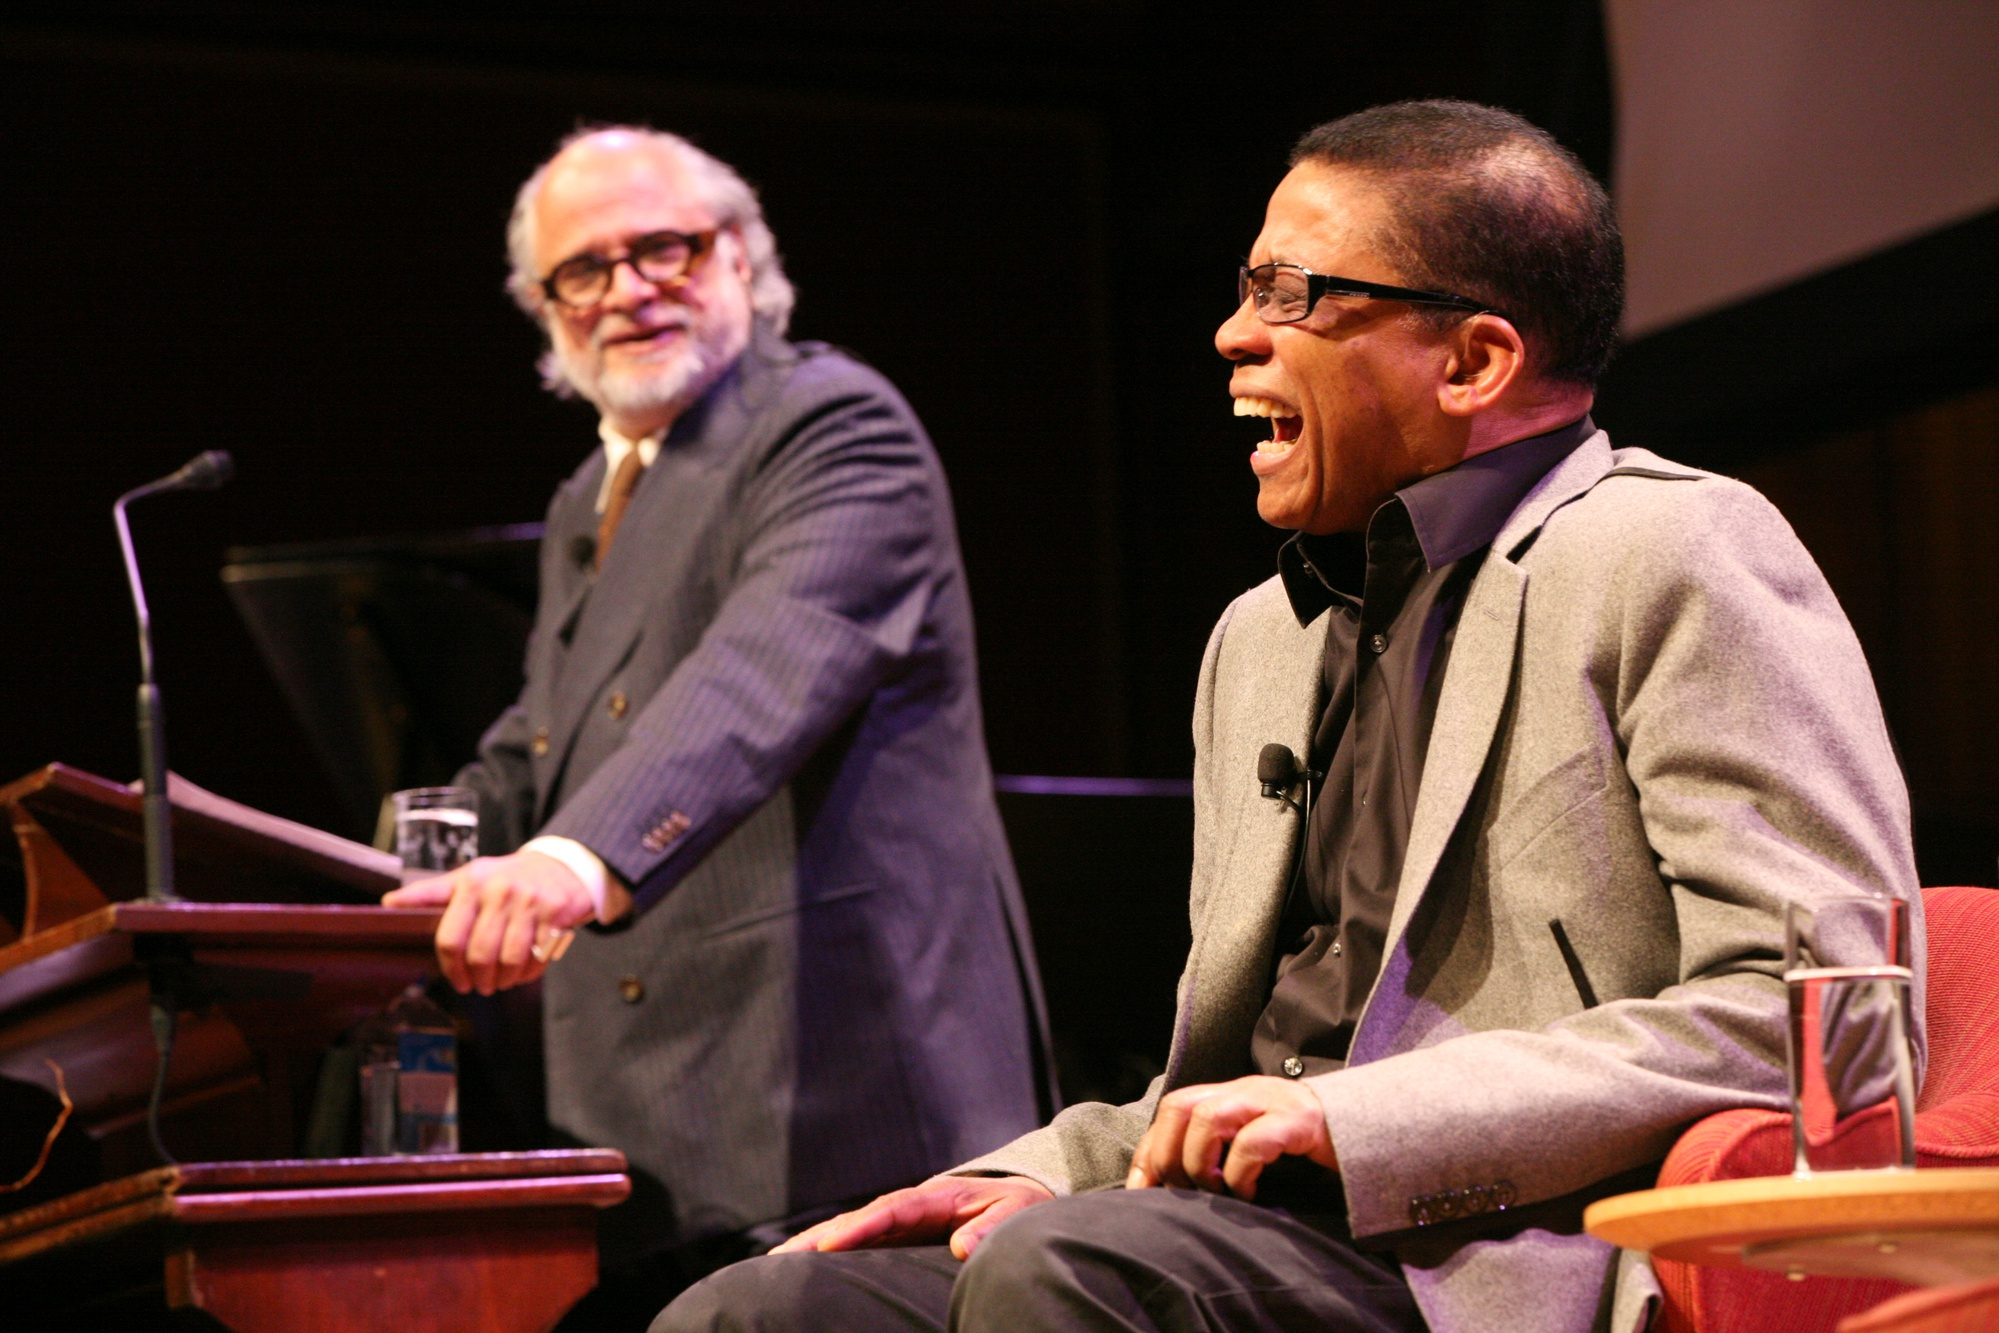 The 2014 Norton Lecturer, Herbie Hancock, bursts into laughter during the first set of his lecture series, 'The Ethics of Jazz' in Sanders Theatre on Feb 3.